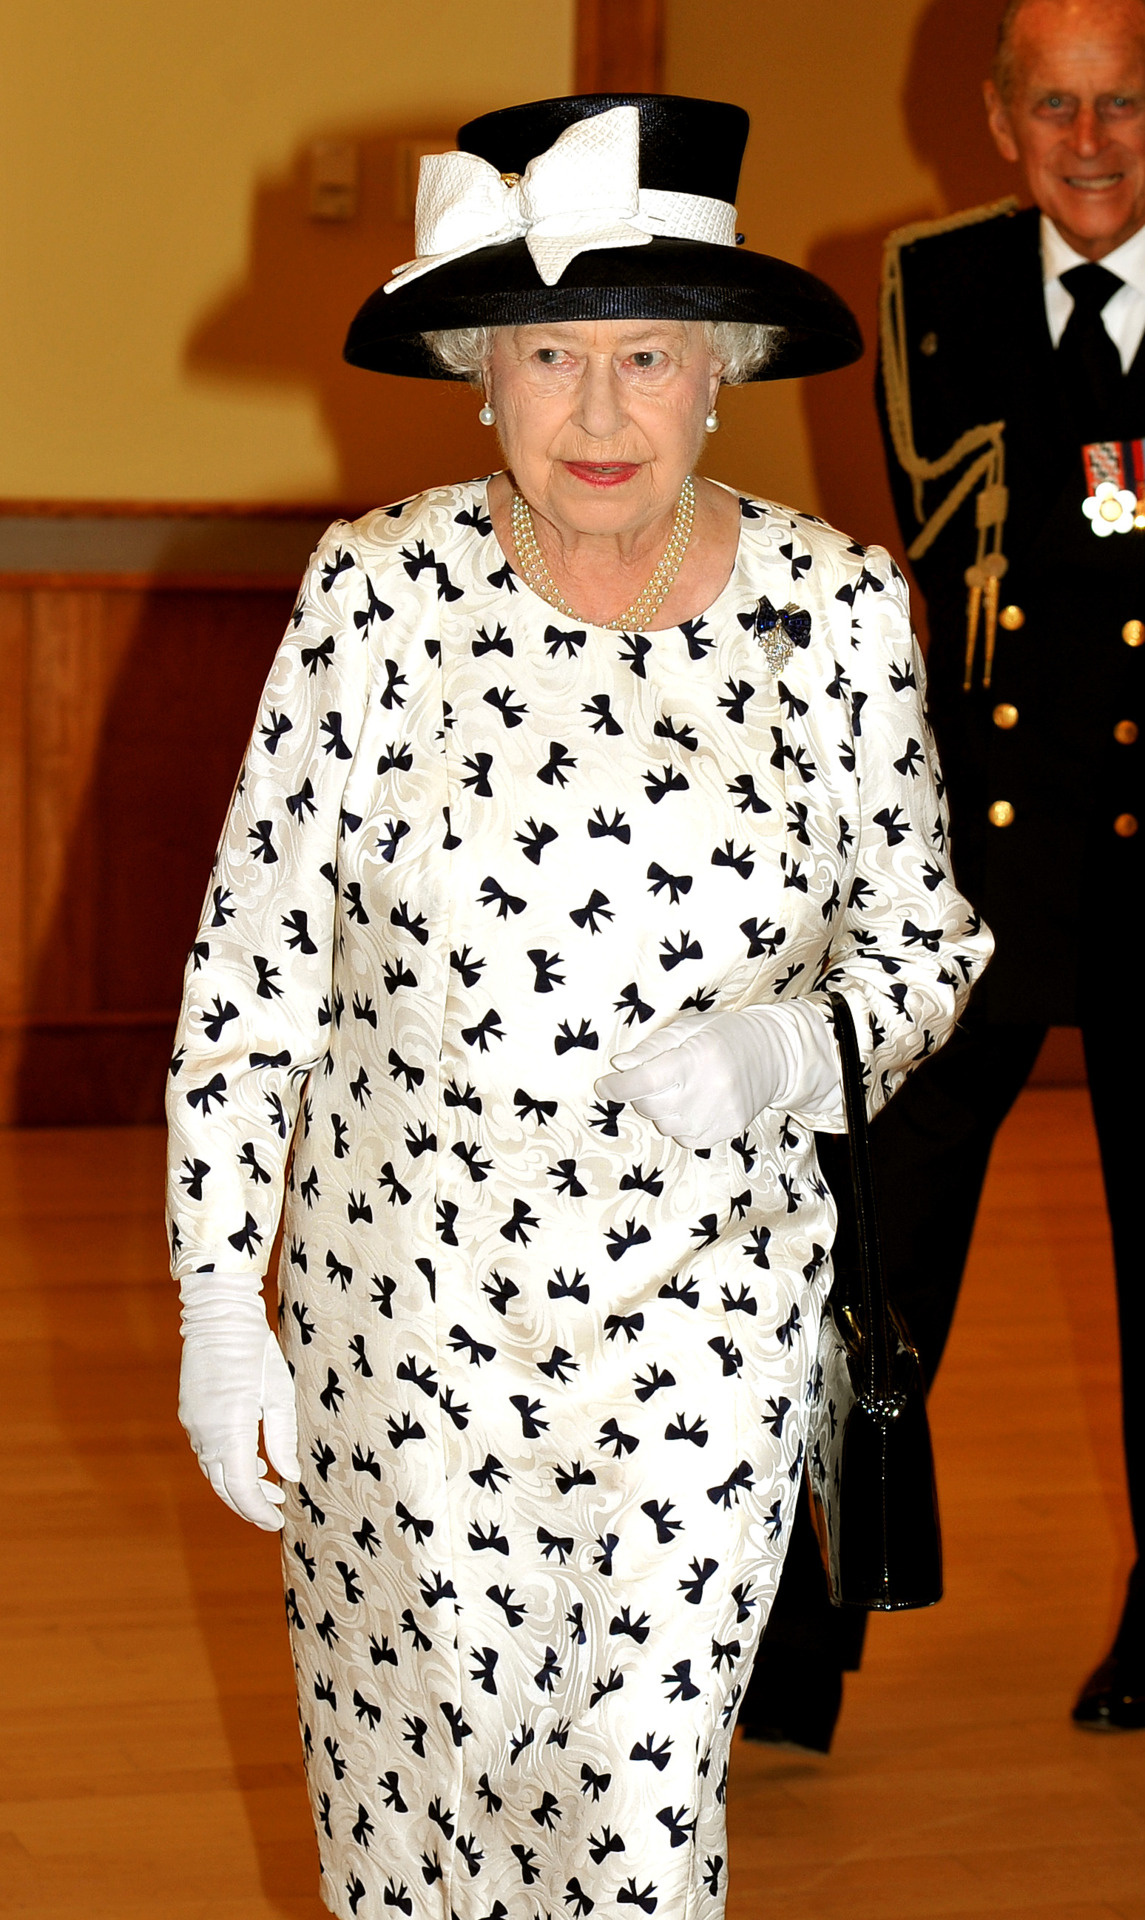 Queen Elizabeth II Visits Canada - Day 2